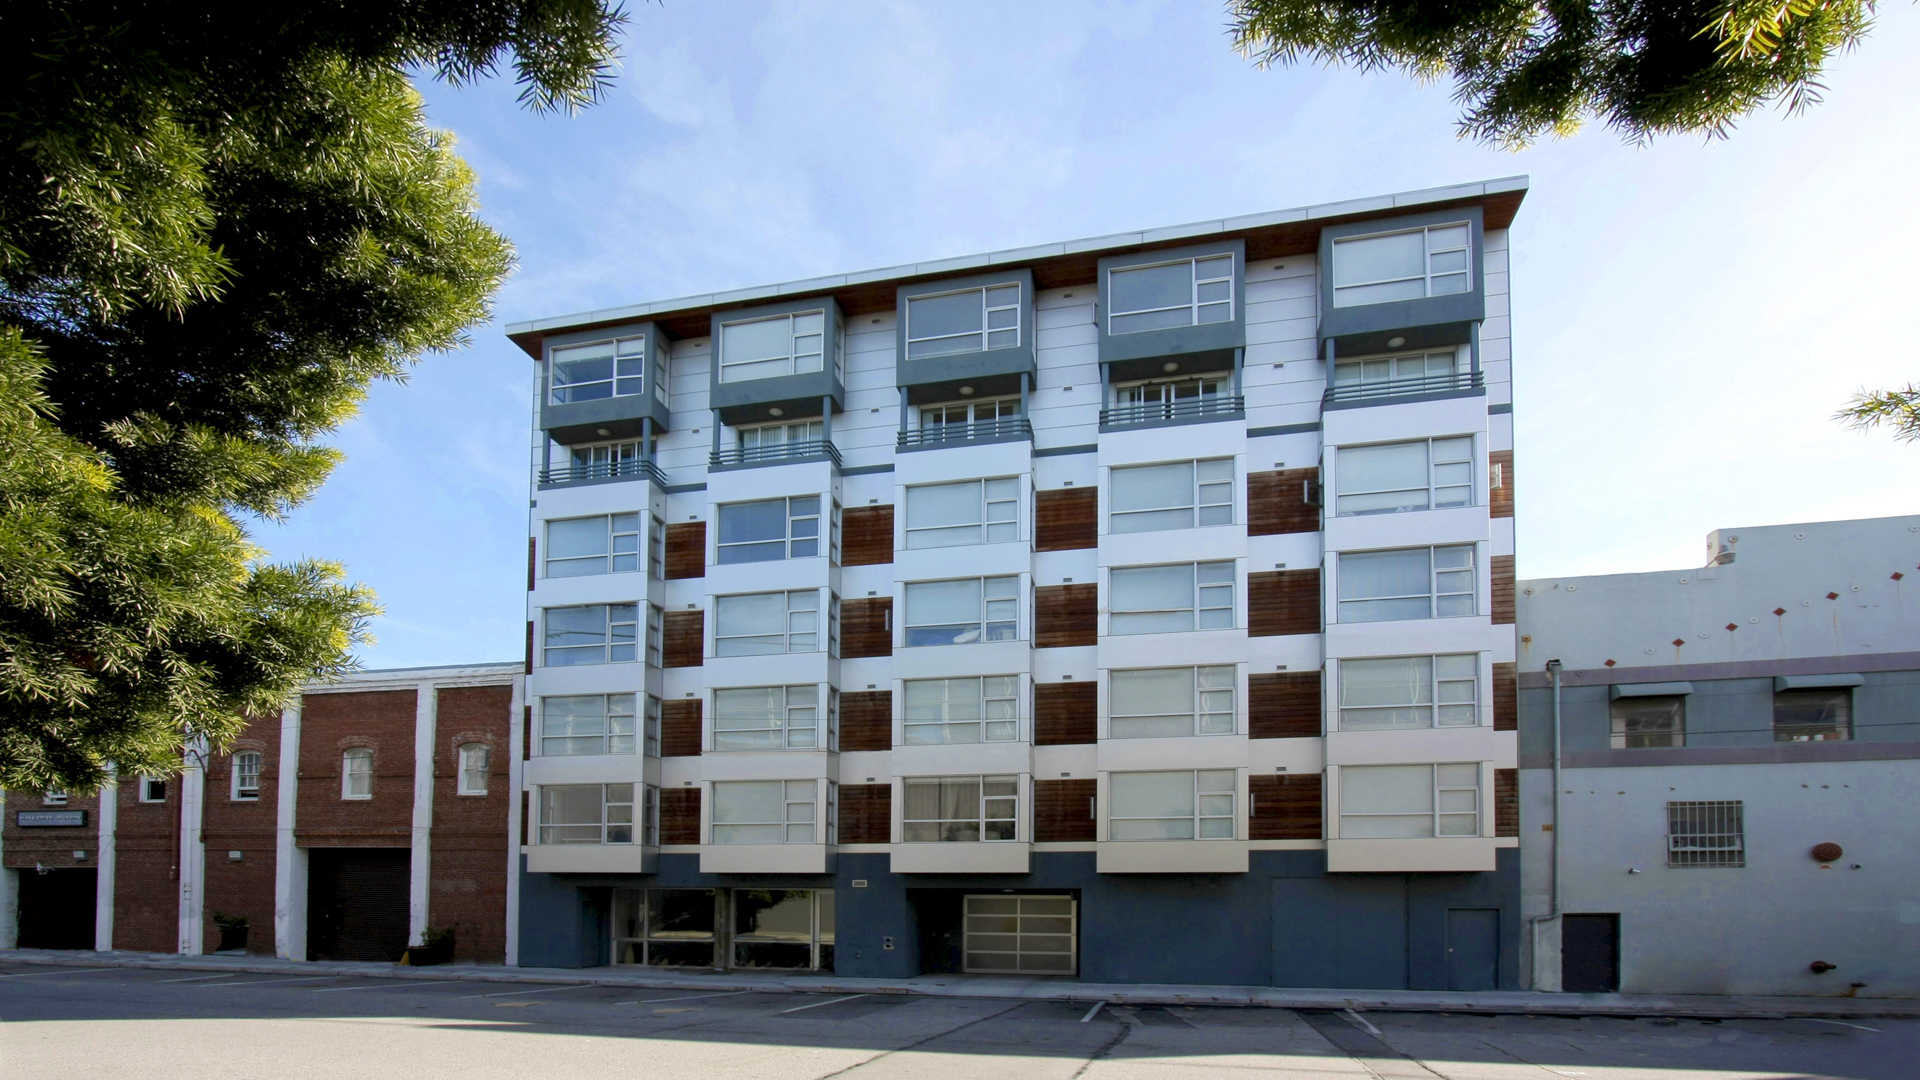 100 Best Apartments In San Francisco, CA (with pictures)!